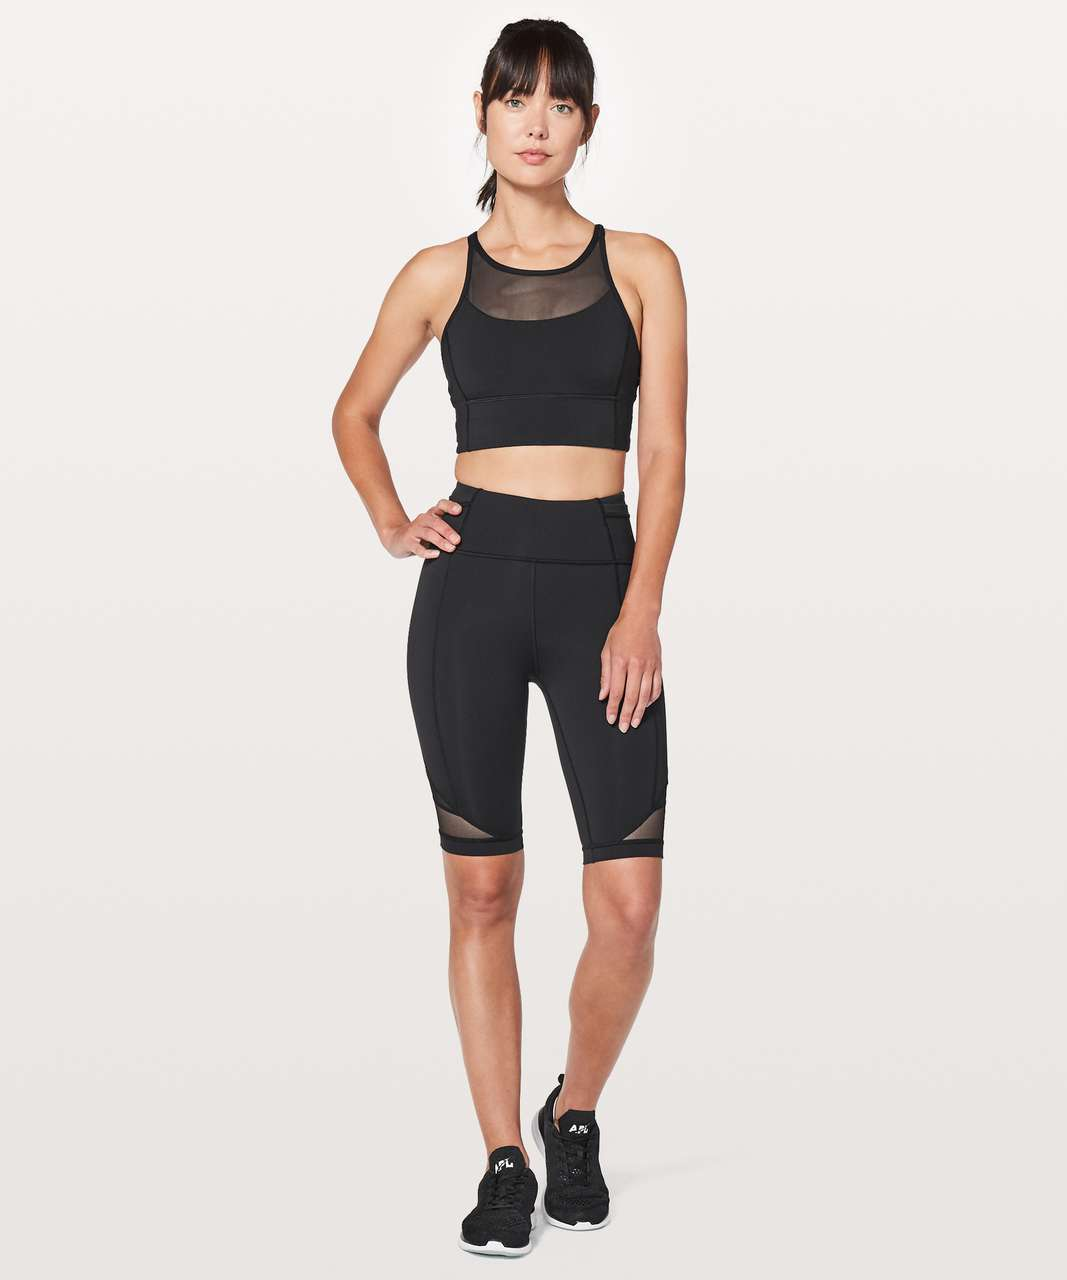 Lululemon Clip-In Long Line Bra - Black